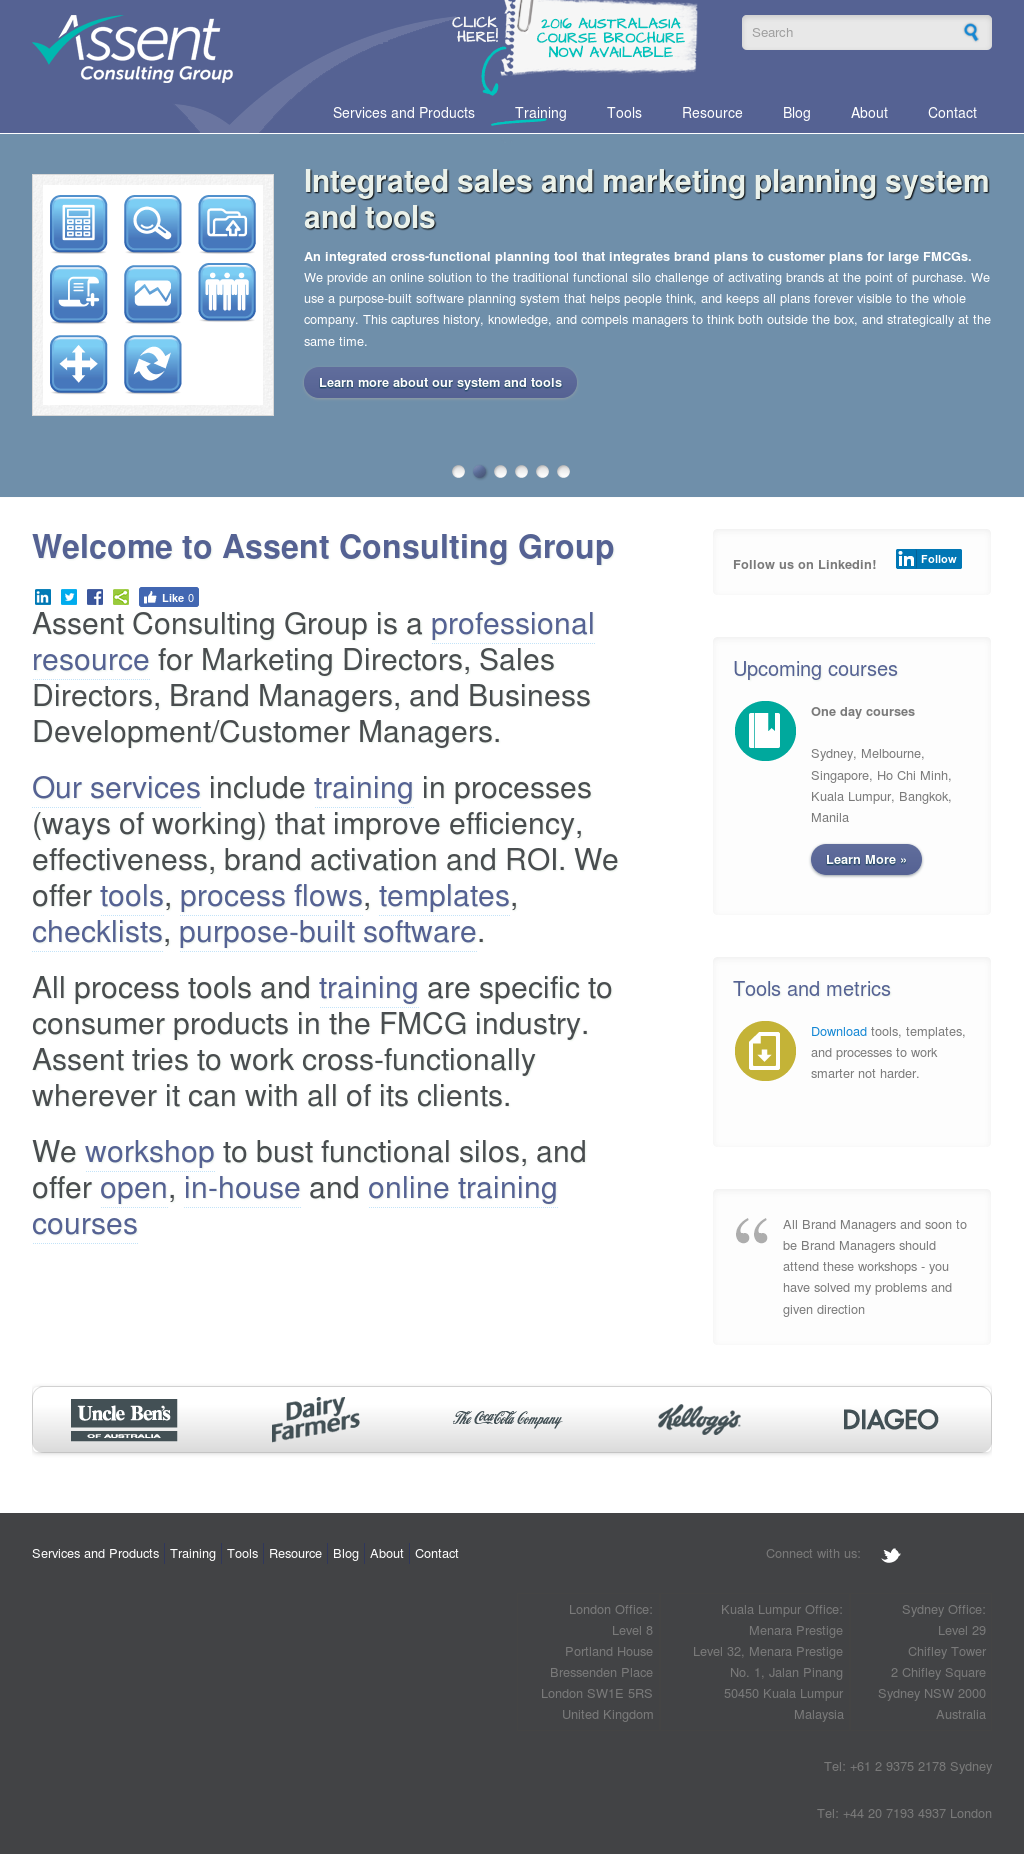 Assent Consulting Group Competitors, Revenue and Employees